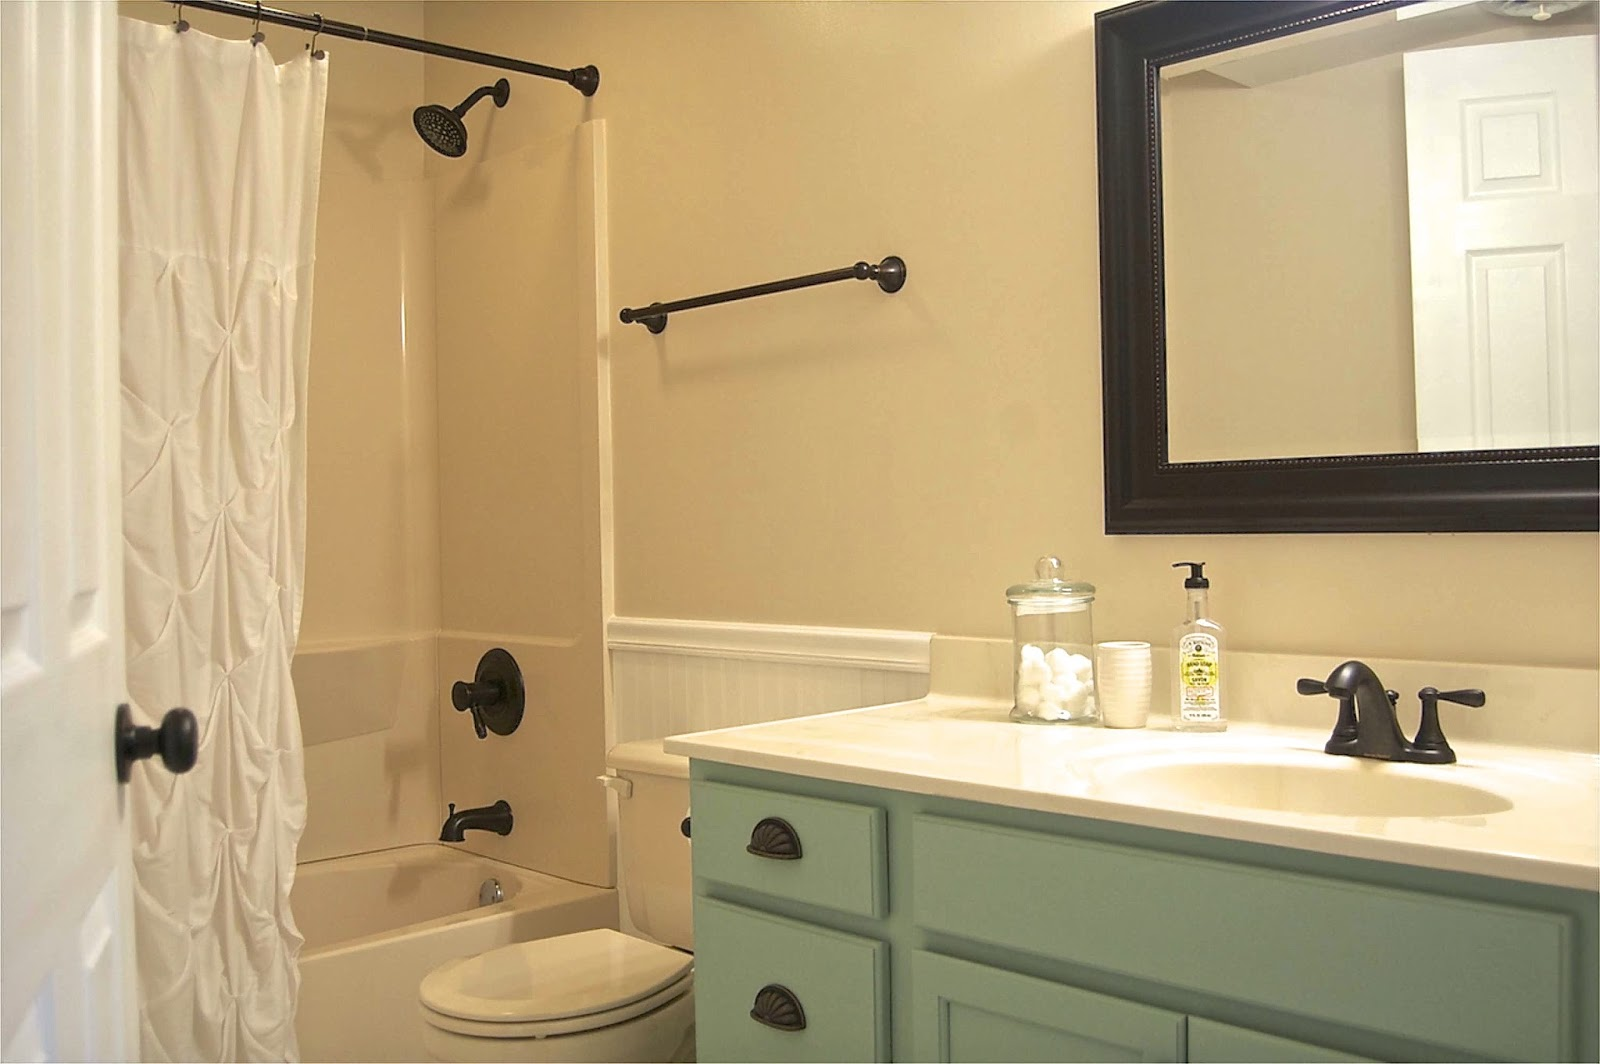 Home Design Ideas Bathroom Makeover - Bathroom remodeling on a budget designs